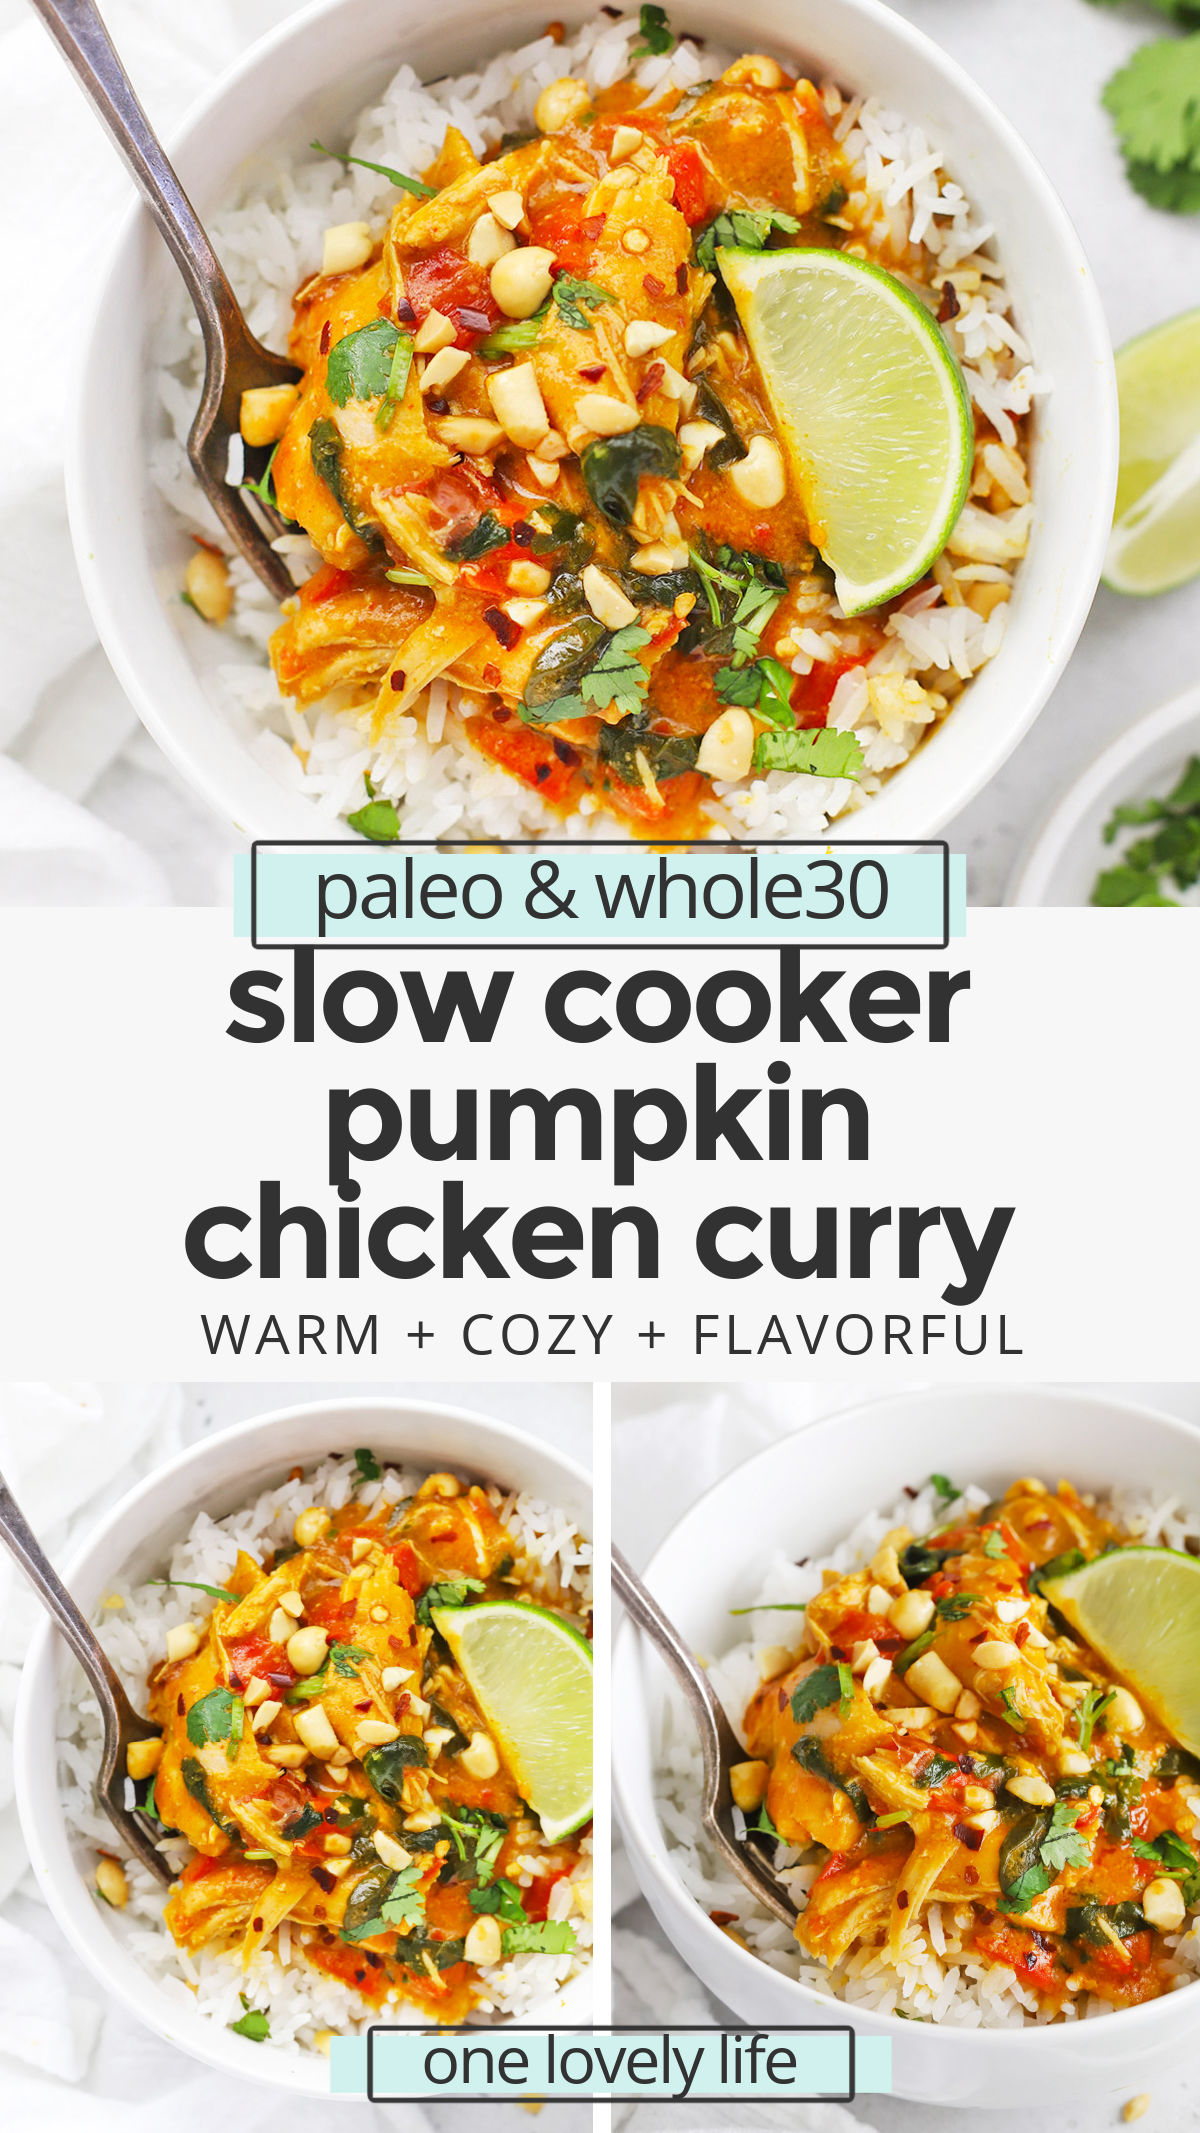 Slow Cooker Pumpkin Chicken Curry - This cozy pumpkin curry has tender chicken, colorful veggies & a mega-flavorful sauce to warm you up from the inside out. (Paleo, Whole30, Gluten-Free) // Pumpkin Curry Recipe // Slow cooker curry // savory pumpkin recipes // healthy dinner // paleo slow cooker recipe // whole30 slow cooker recipe // paleo chicken // healthy pumpkin recipe #glutenfree #pumpkin #slowcooker #crockpot #paleo #whole30